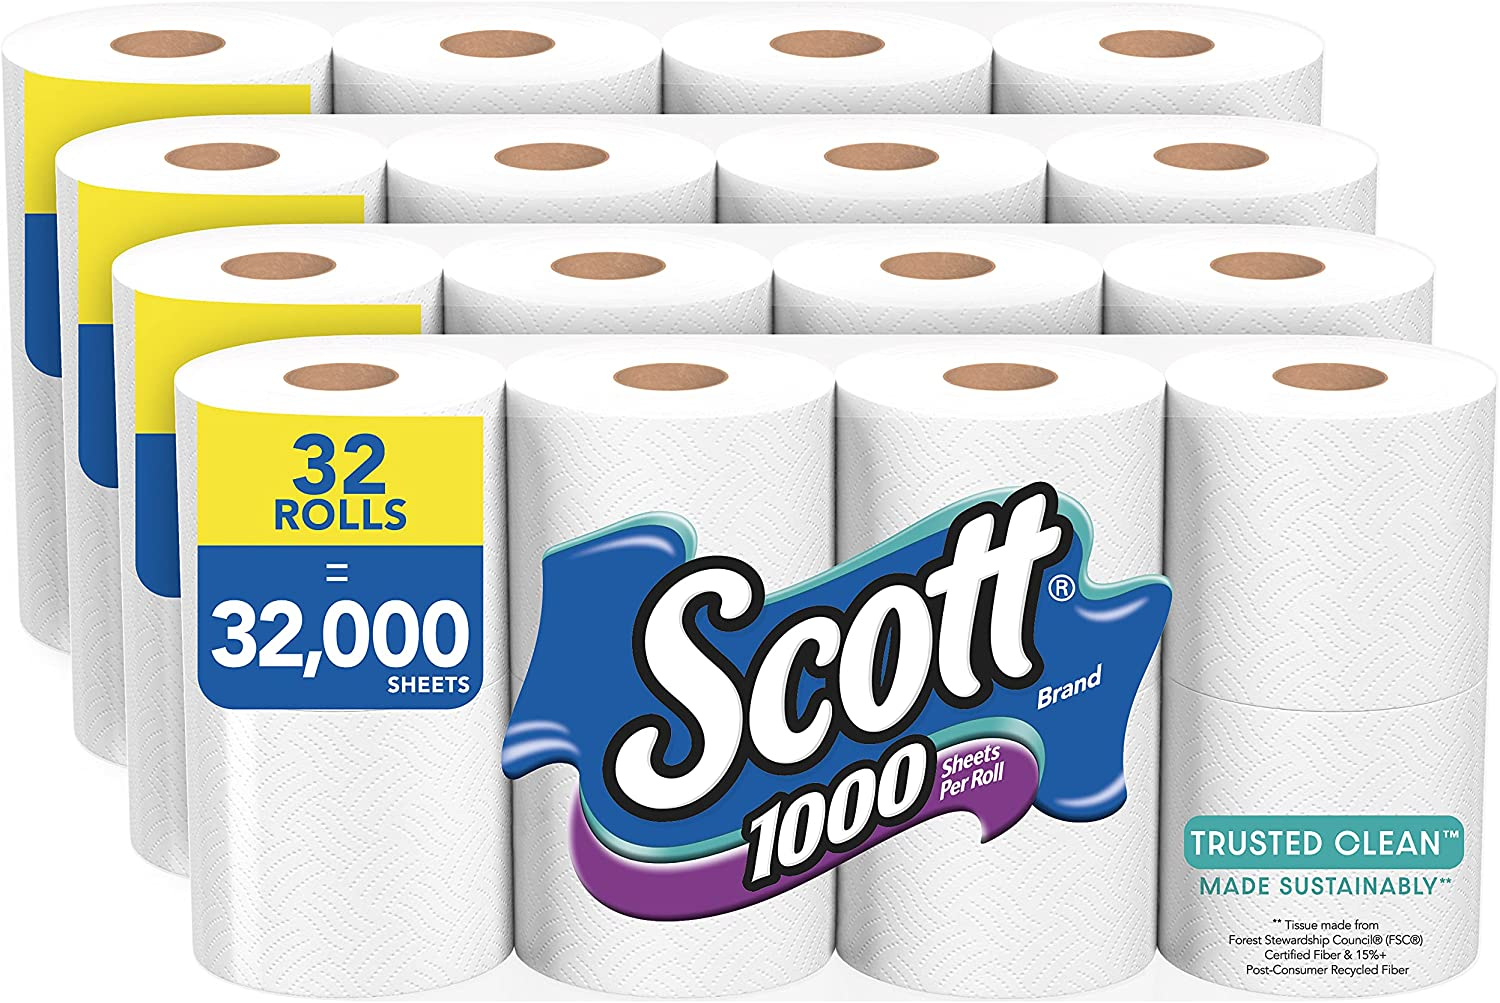 Scott 1000 Trusted Clean Toilet Paper, 32 Rolls (4 Packs of 8), 1,000 Sheets Per Roll, Septic-Safe, Bath Tissue Made Sustainably : Health & Household